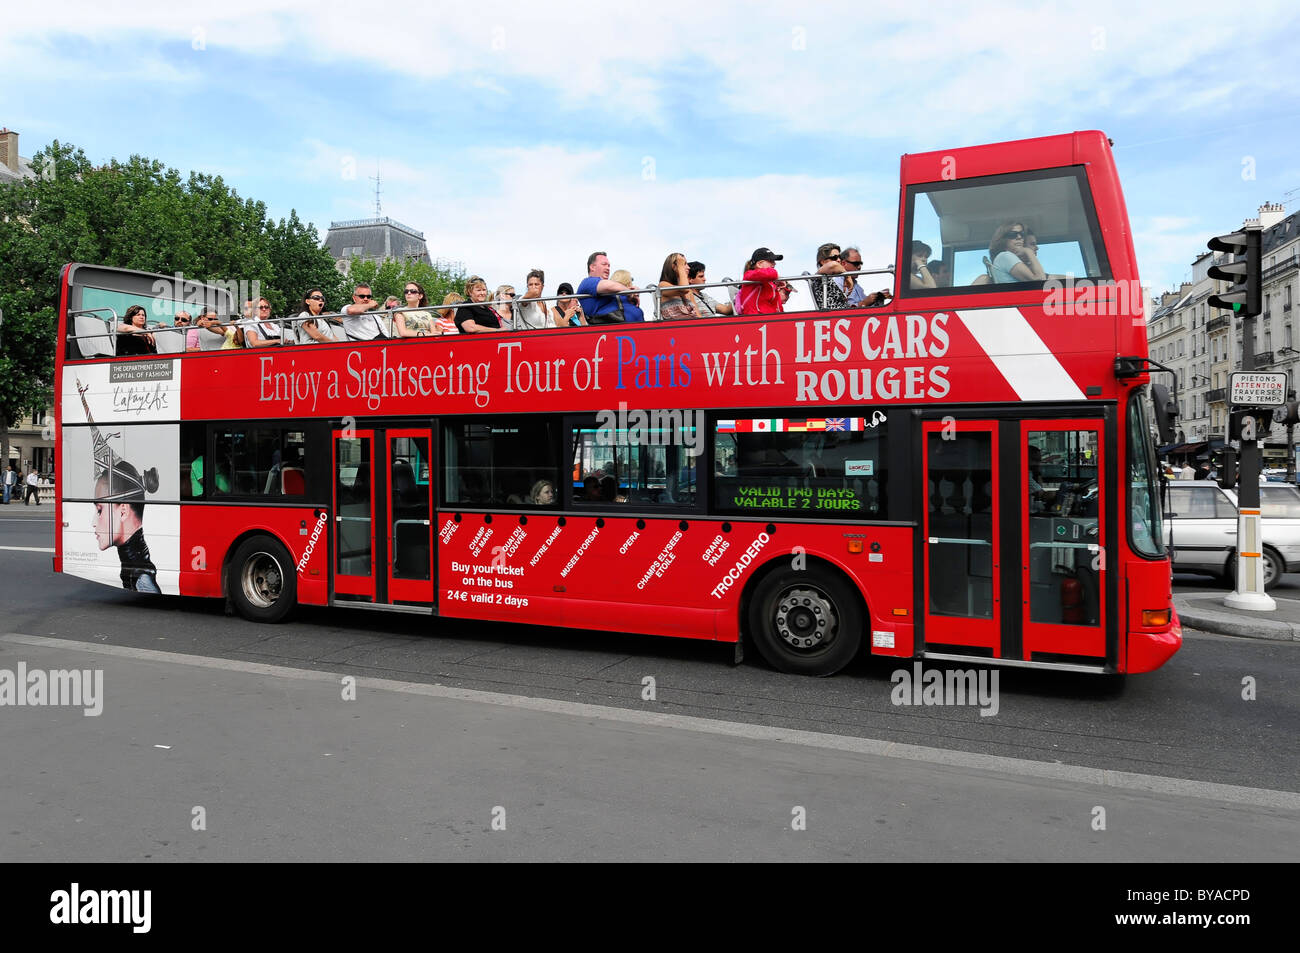 paris sightseeing bus stock photos paris sightseeing bus stock images alamy. Black Bedroom Furniture Sets. Home Design Ideas